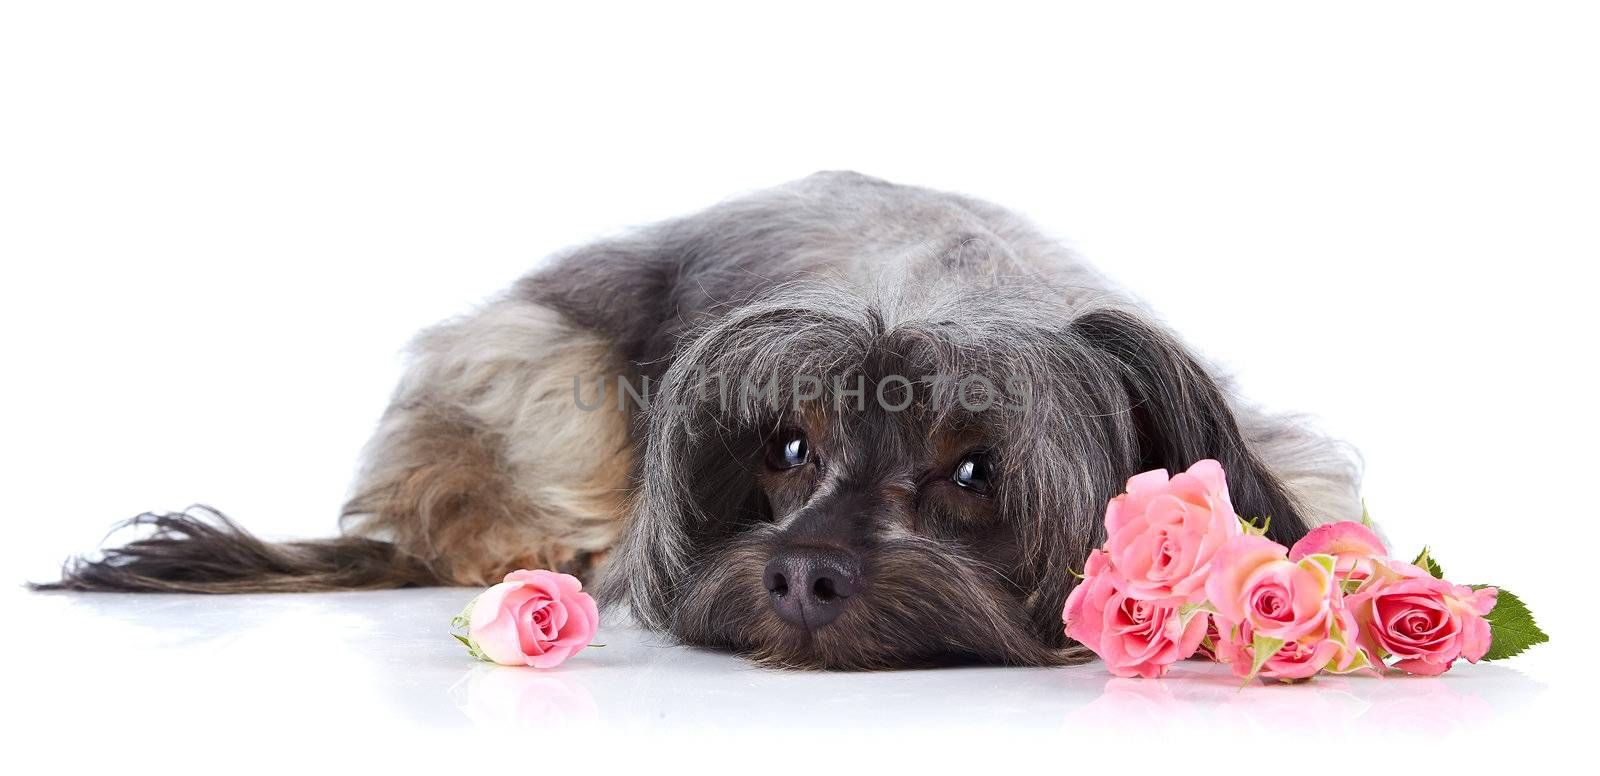 Small doggie. Decorative thoroughbred dog. Puppy of the Petersburg orchid. Shaggy doggie. The dog lies. Doggie and roses. Doggie and flowers.